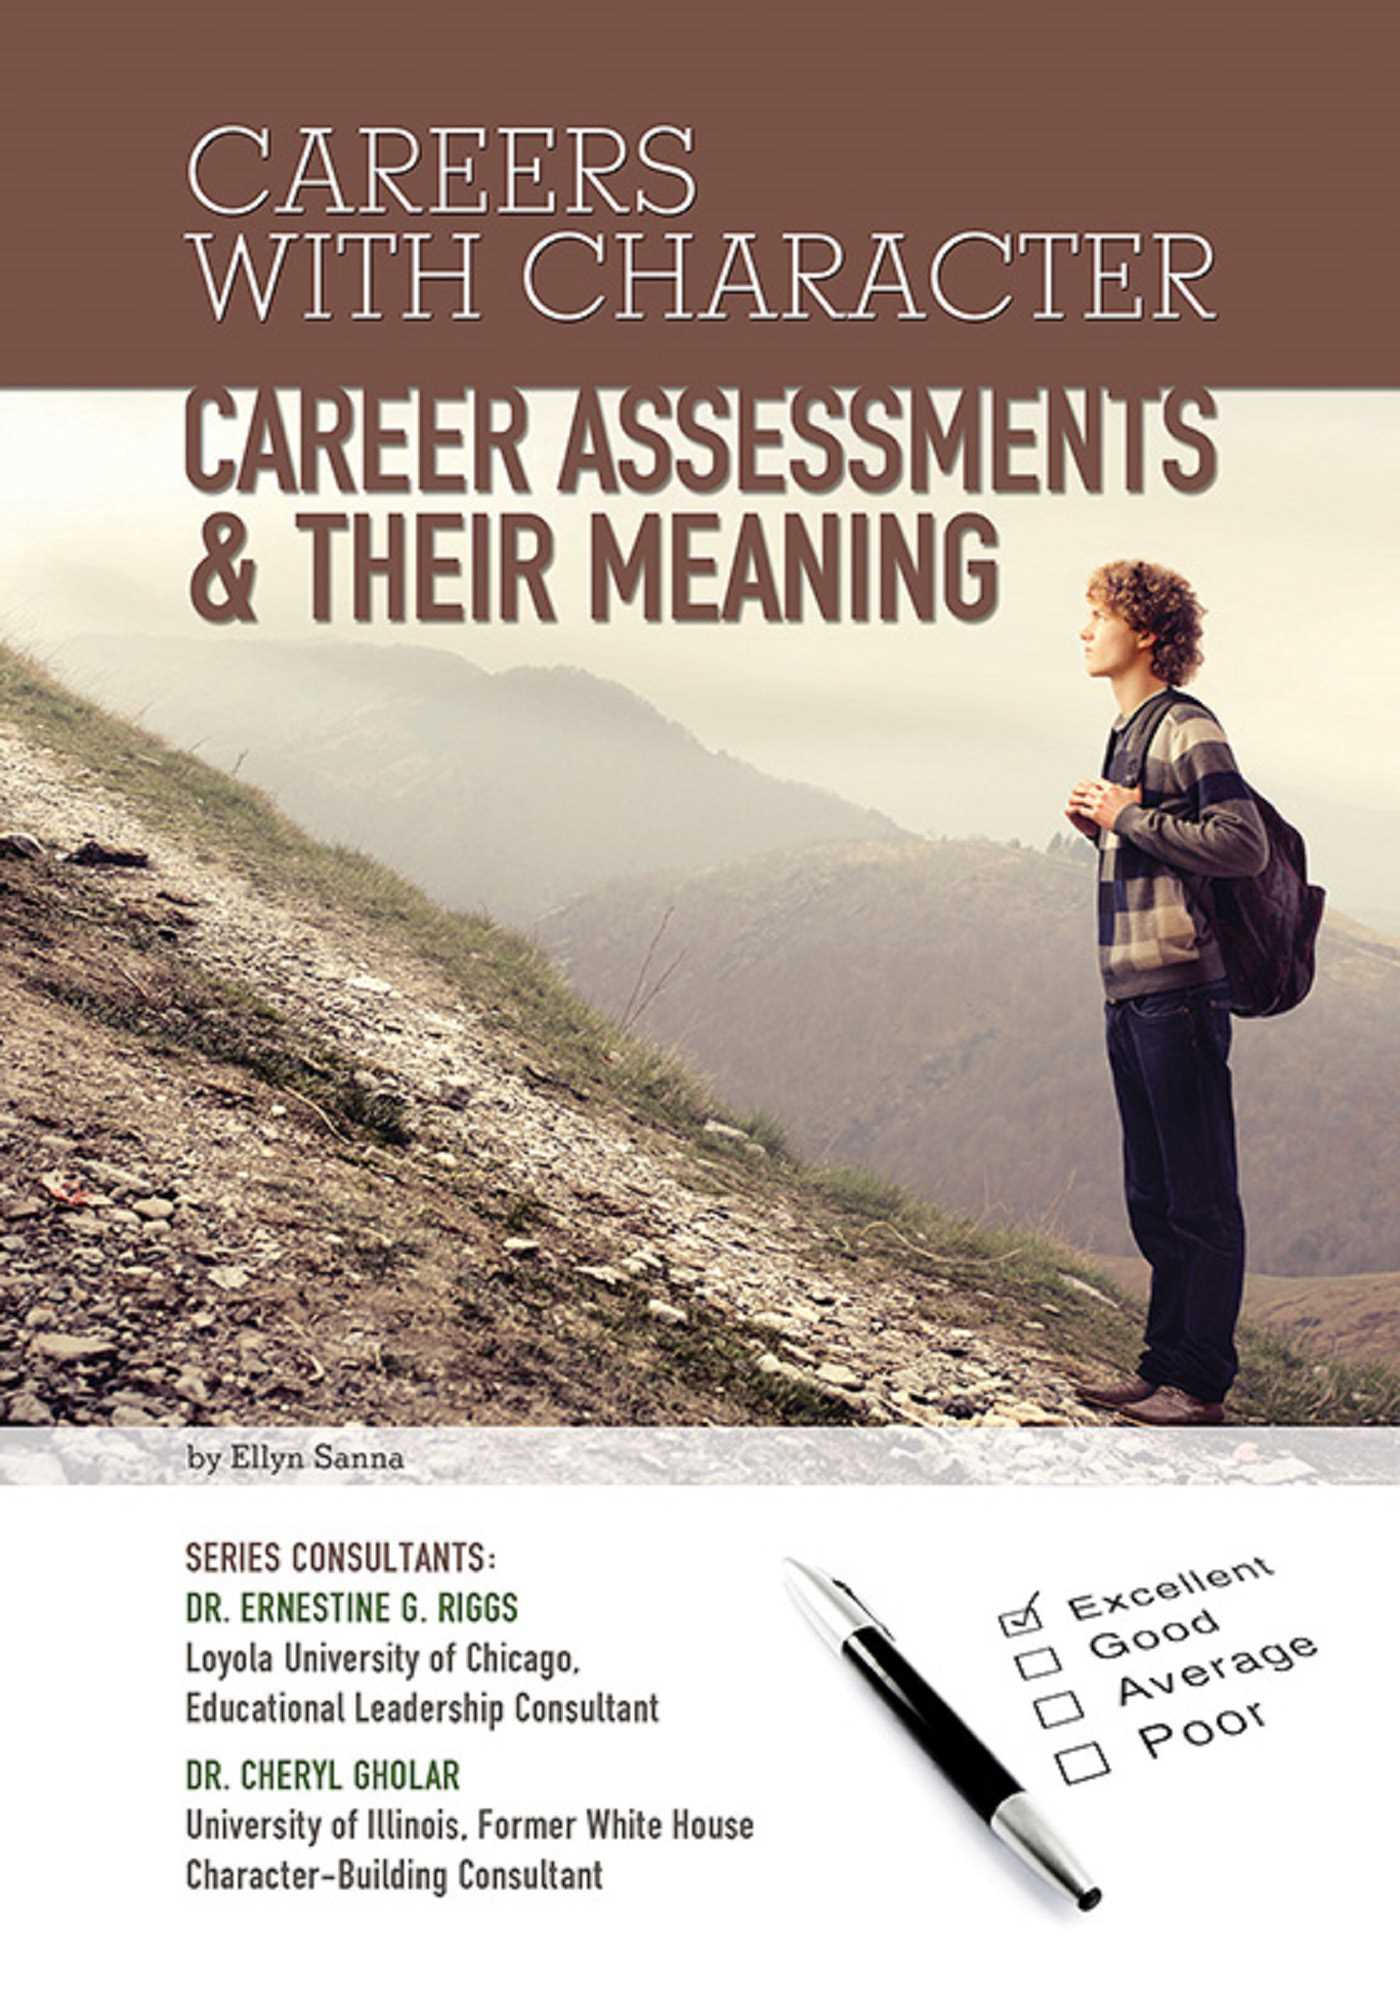 career assessments their meaning ebook by ellyn sanna official career assessments their meaning 9781422290477 hr